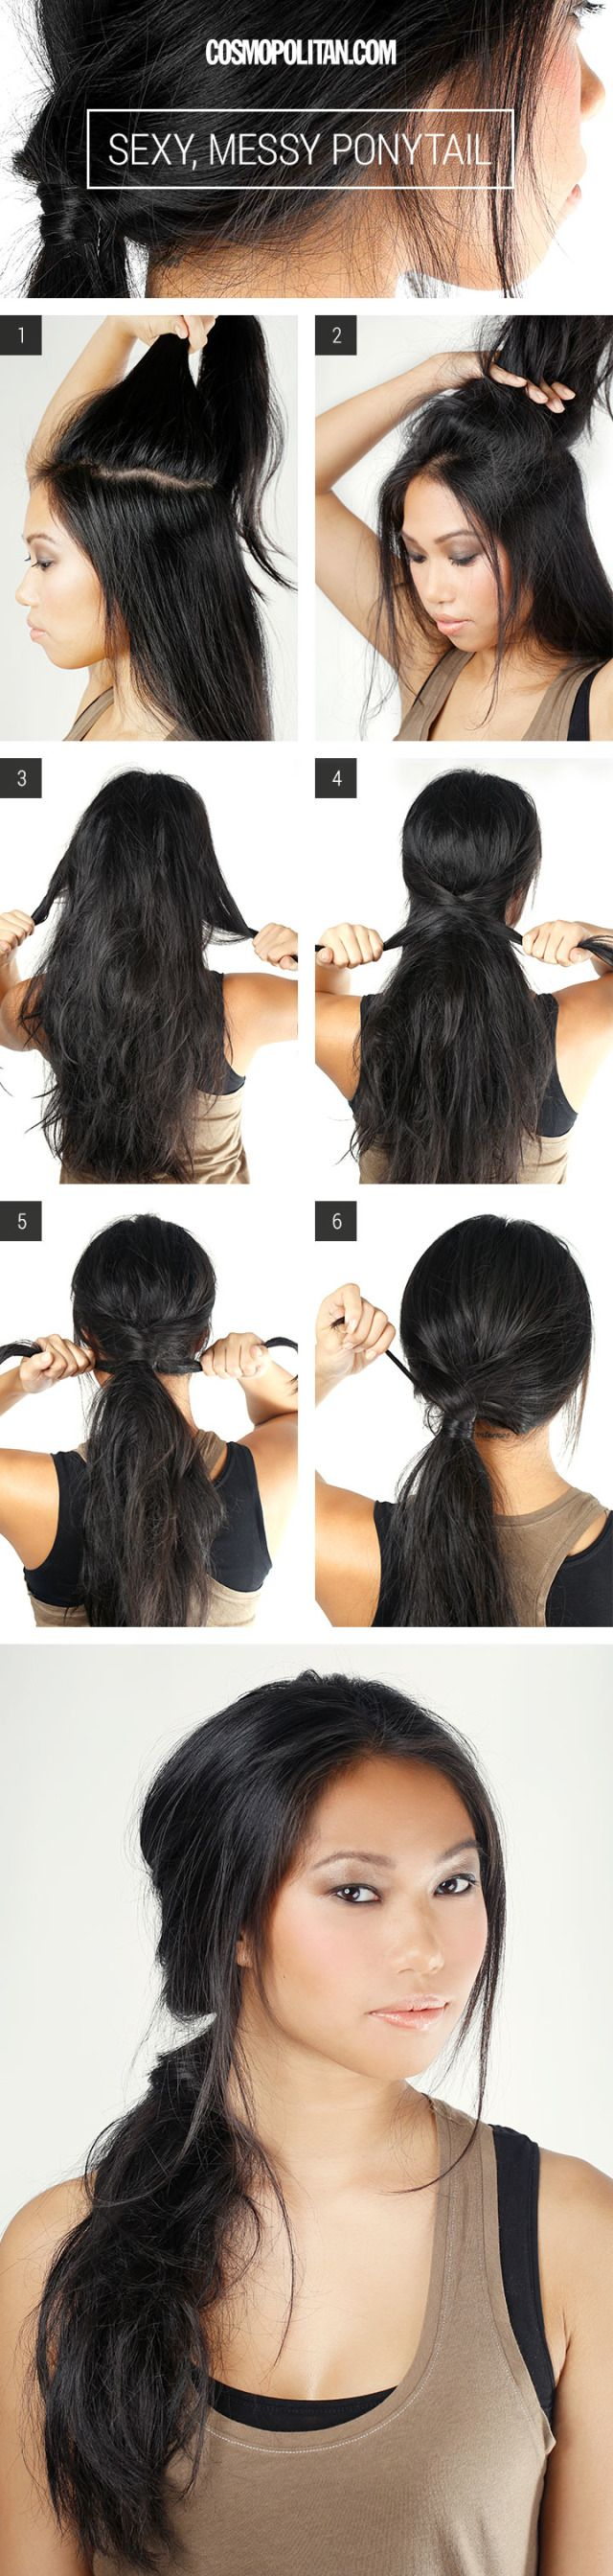 "1. Gather the center section of your hair. ""You'll want to separate this portion of your hair away from the rest, so that you can tease it t..."